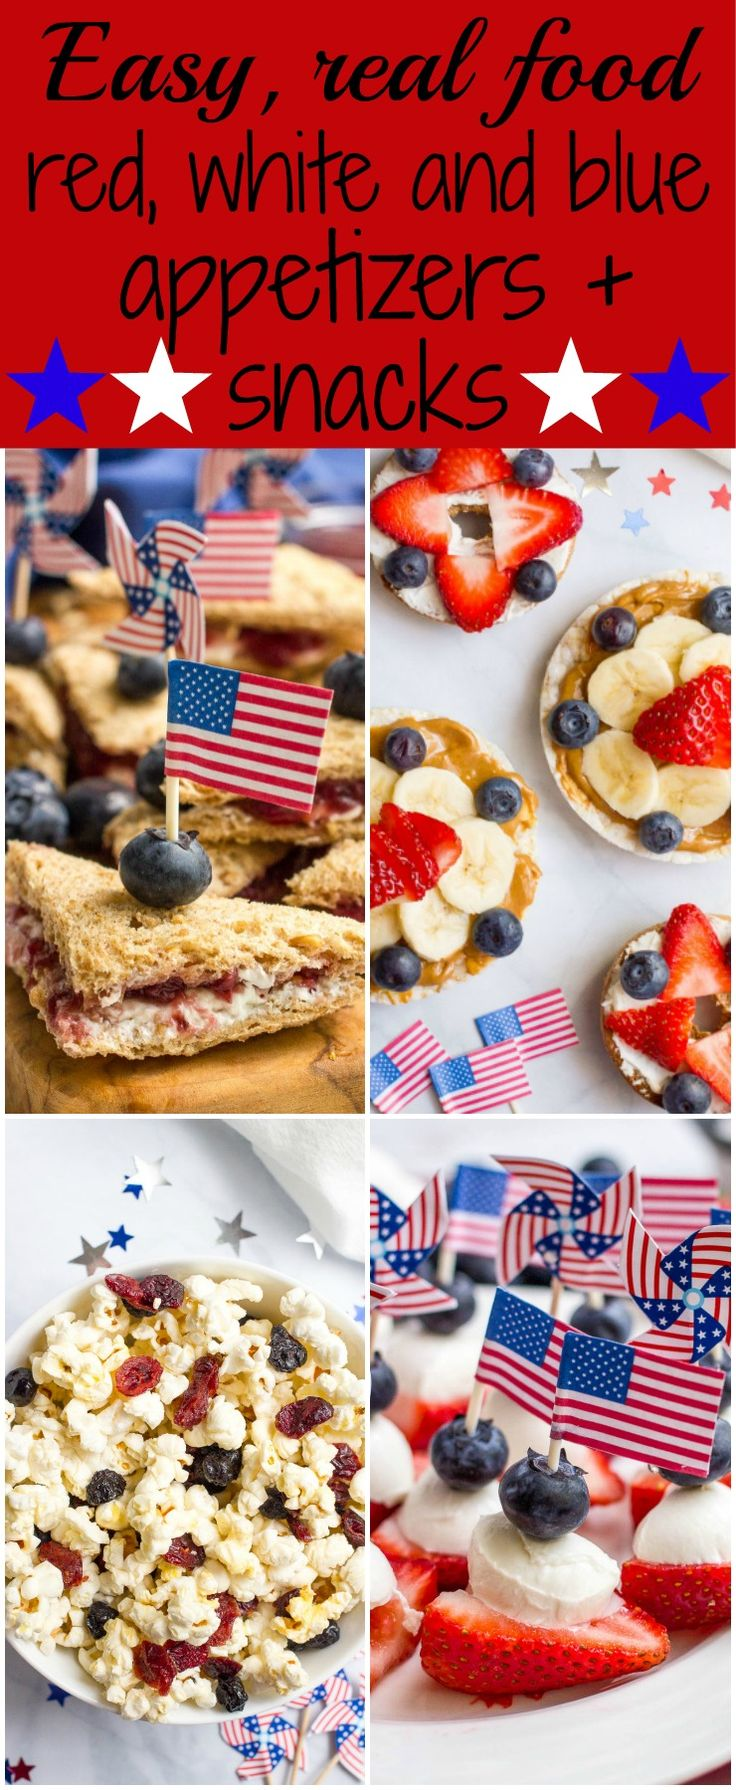 3 easy ideas for fun, festive July 4th snacks and appetizers!